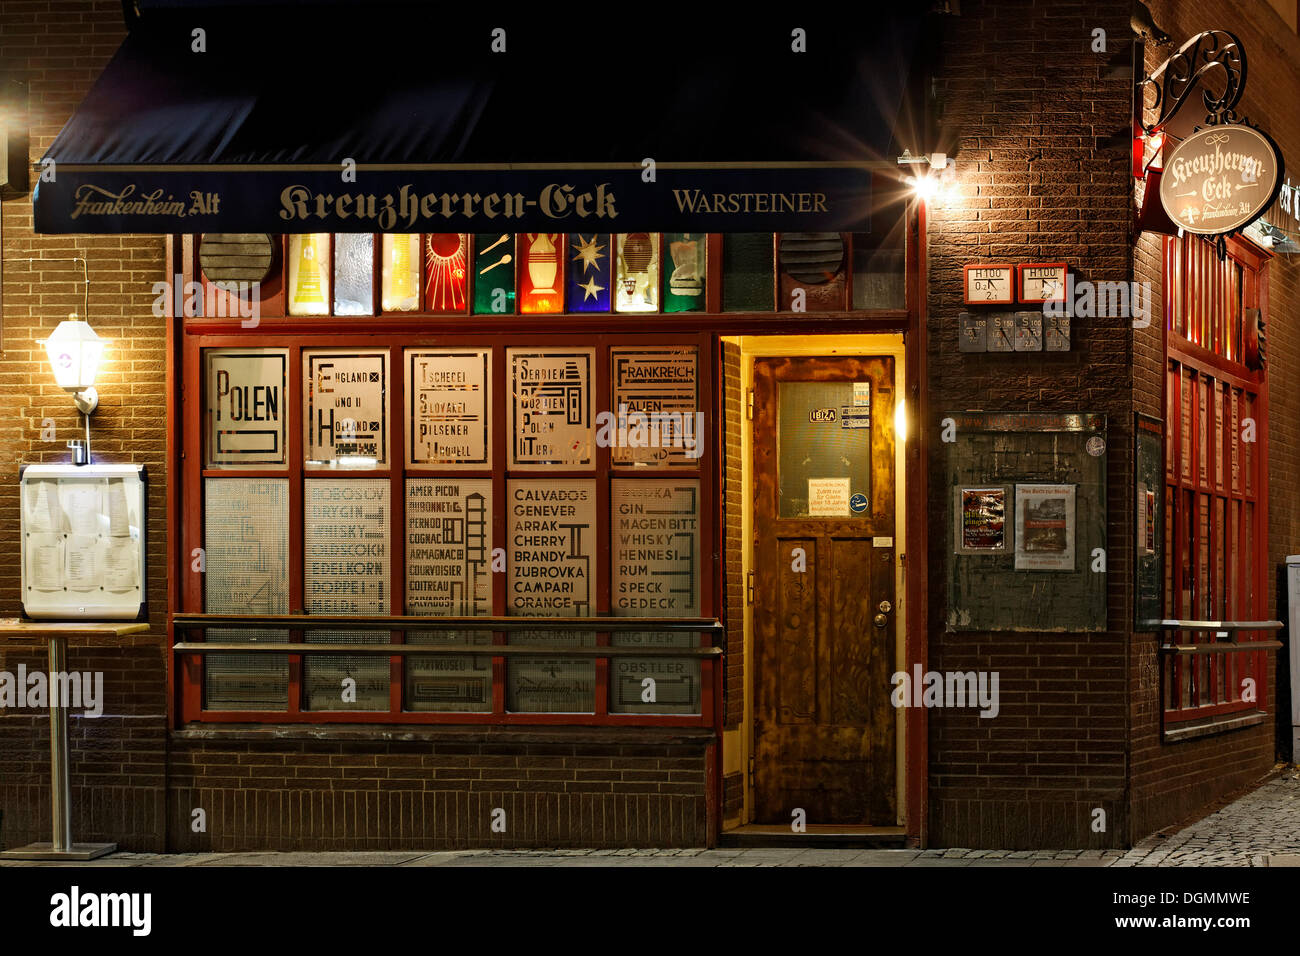 Kreuzherren-Eck pub, fully licenced, art bar of the 50s, stained-glass windows by Guenter Grote, Ratinger Strasse street - Stock Image